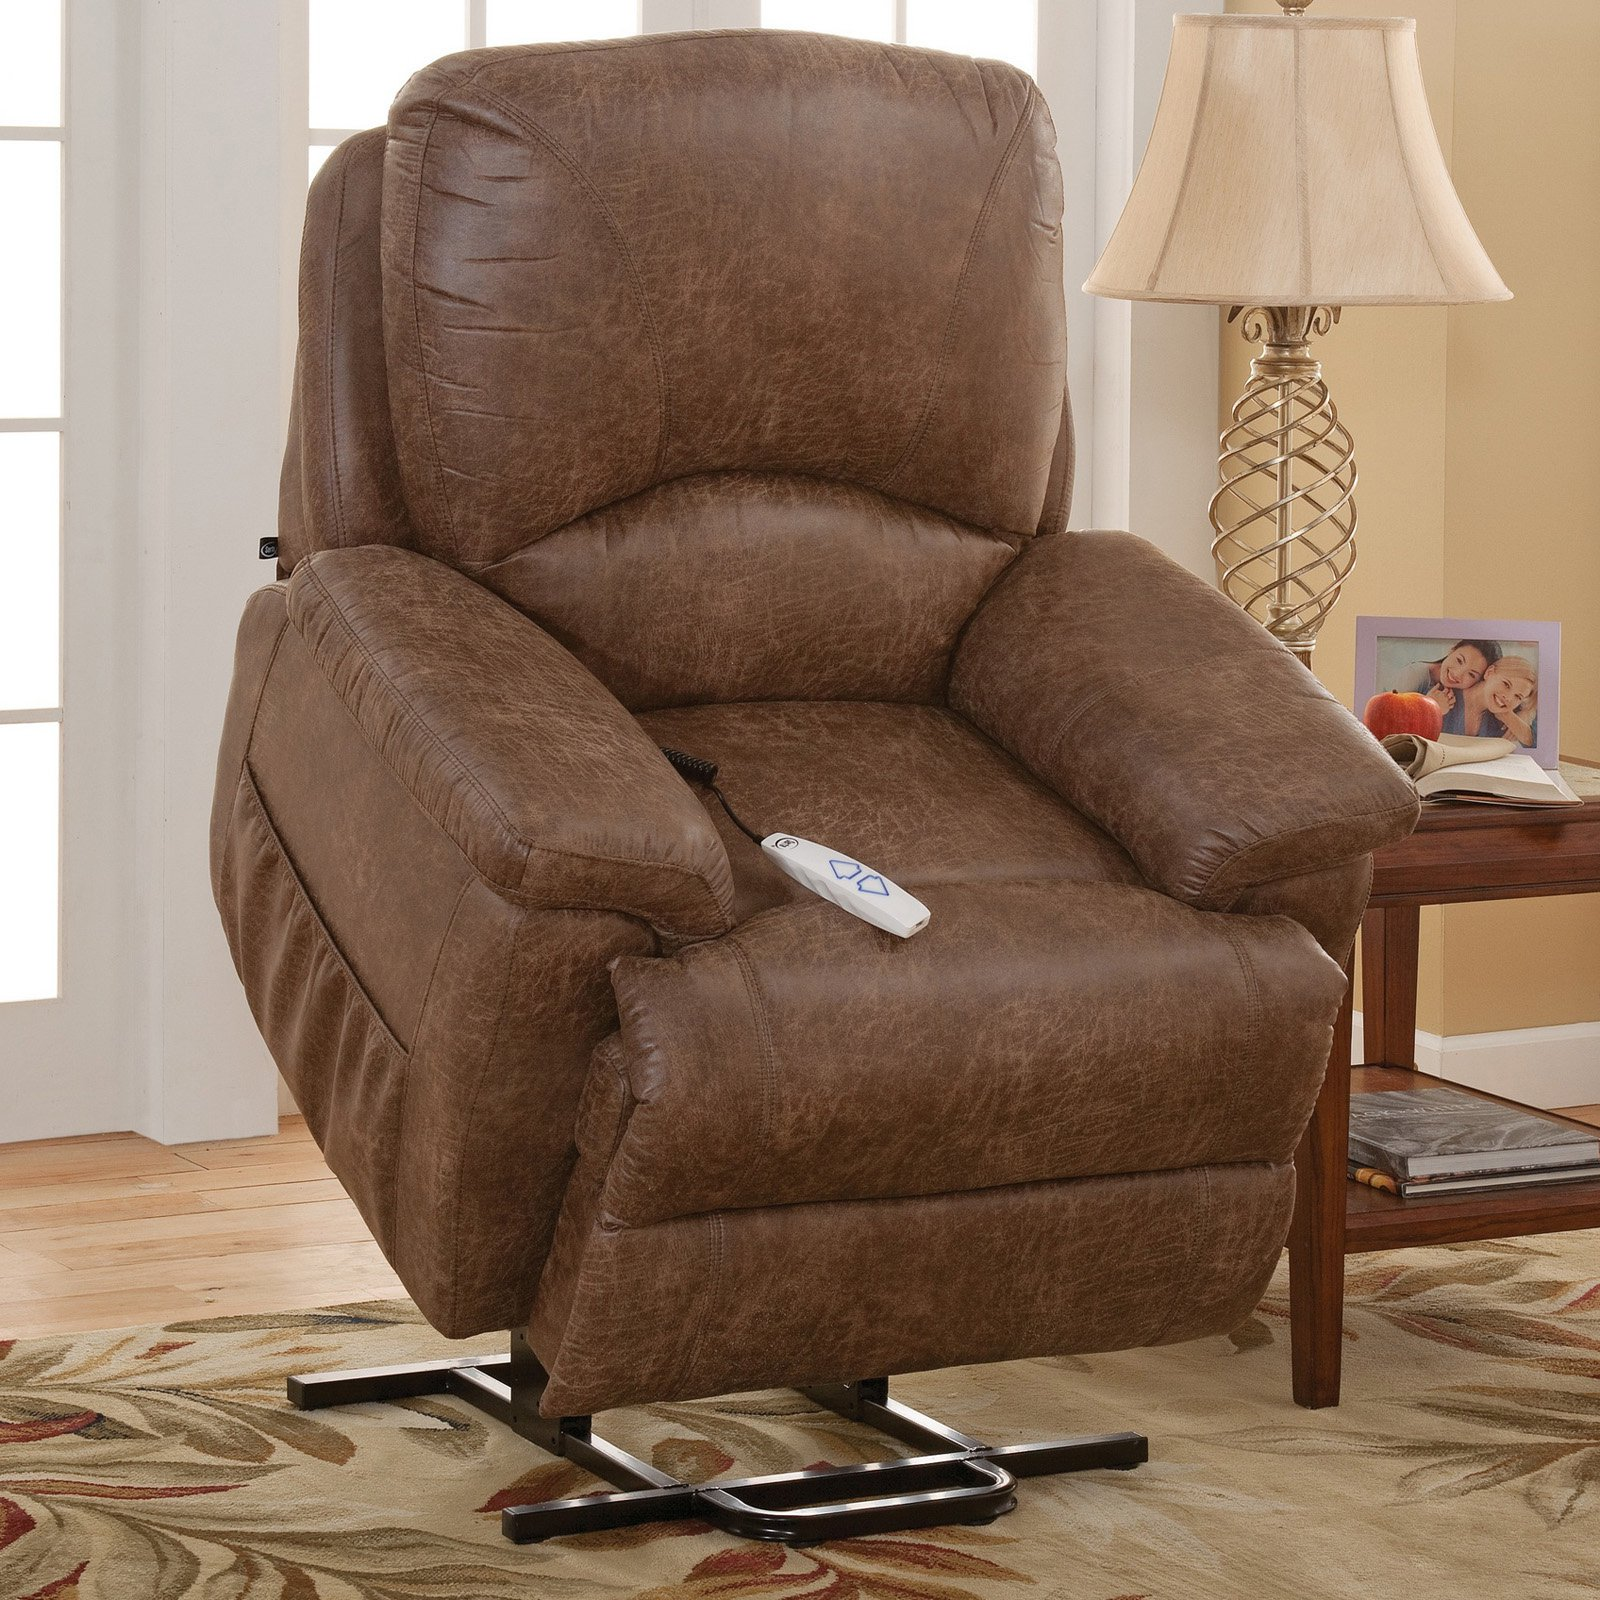 manual oak s furniture schneiderman room recliner power chair and mission serta recliners final living